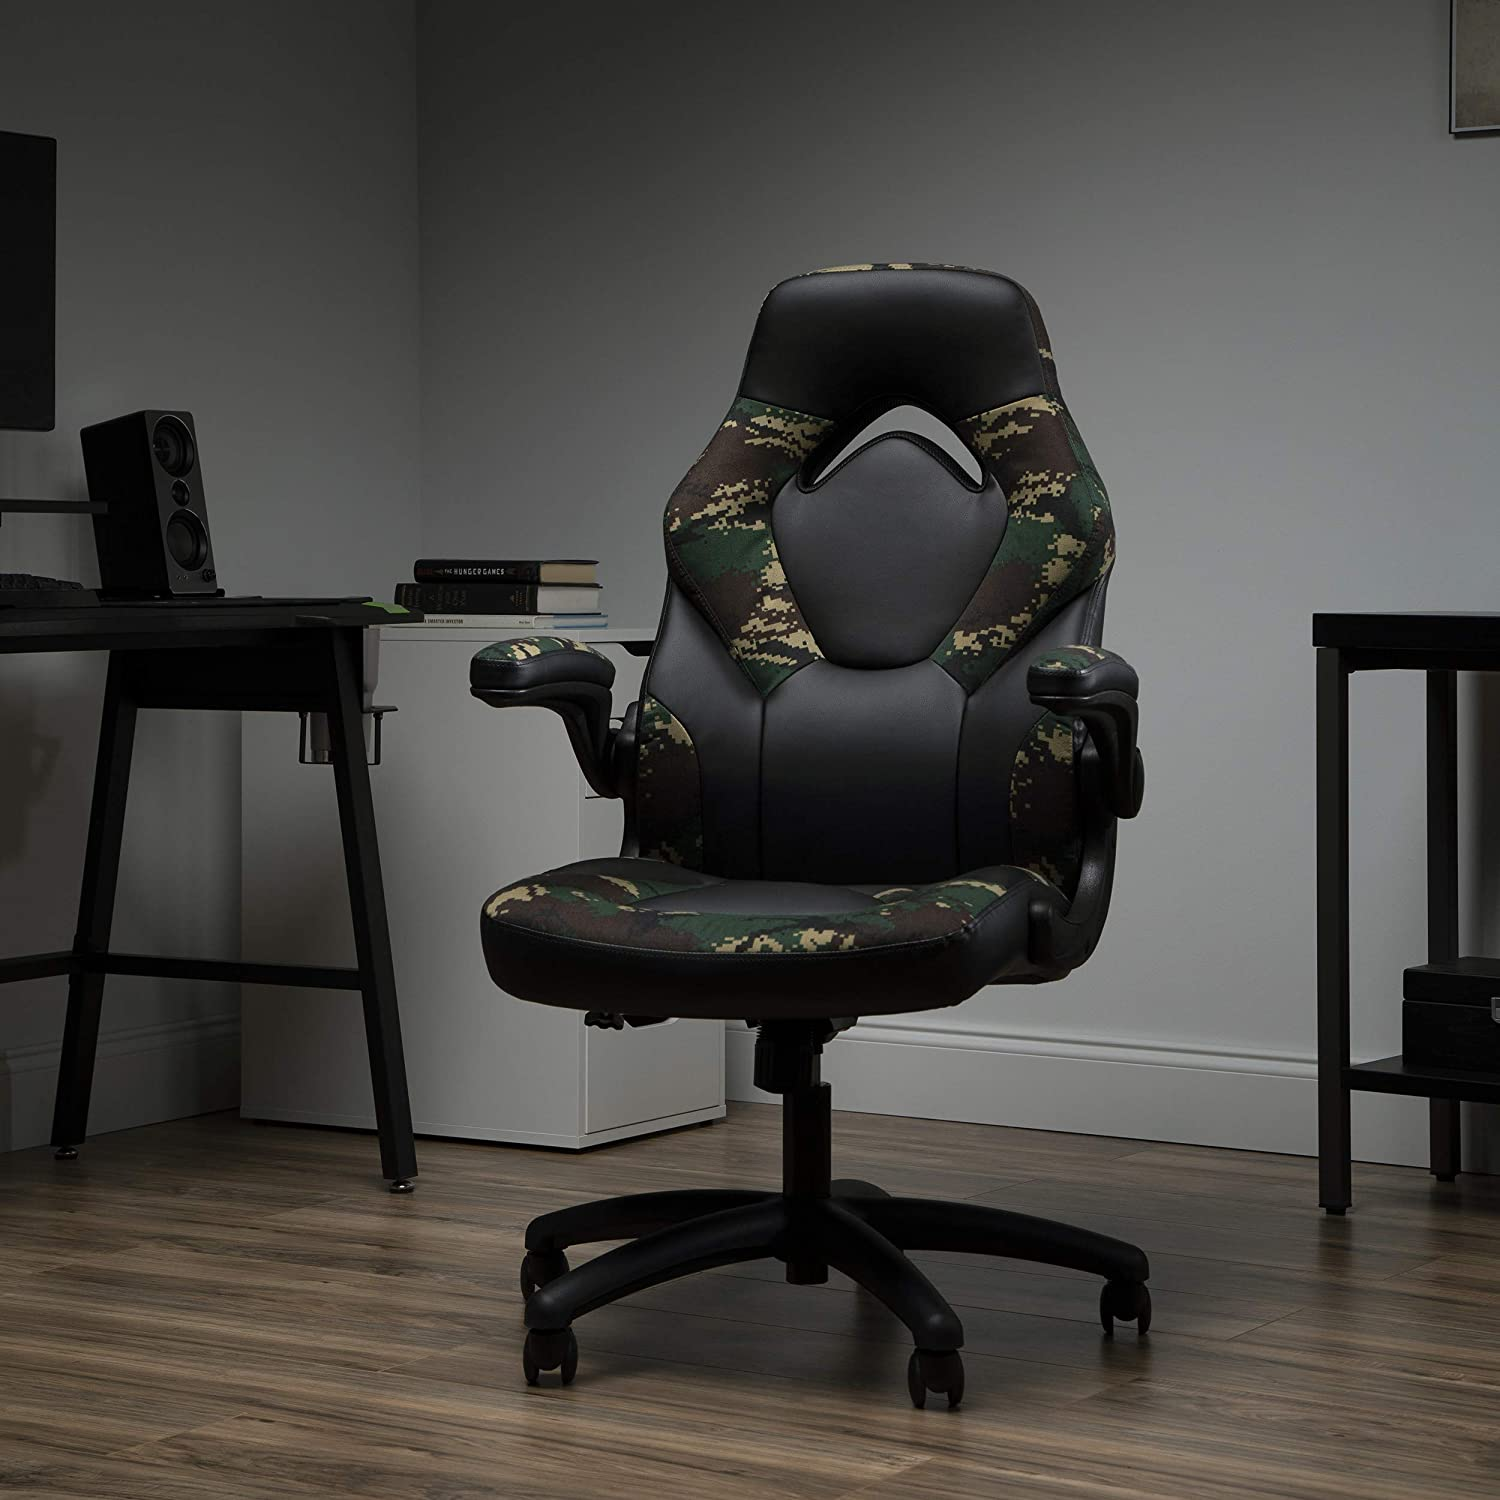 OFM ESS Collection Bonded Leather Gaming Chair, Racing Style, Forest Camo